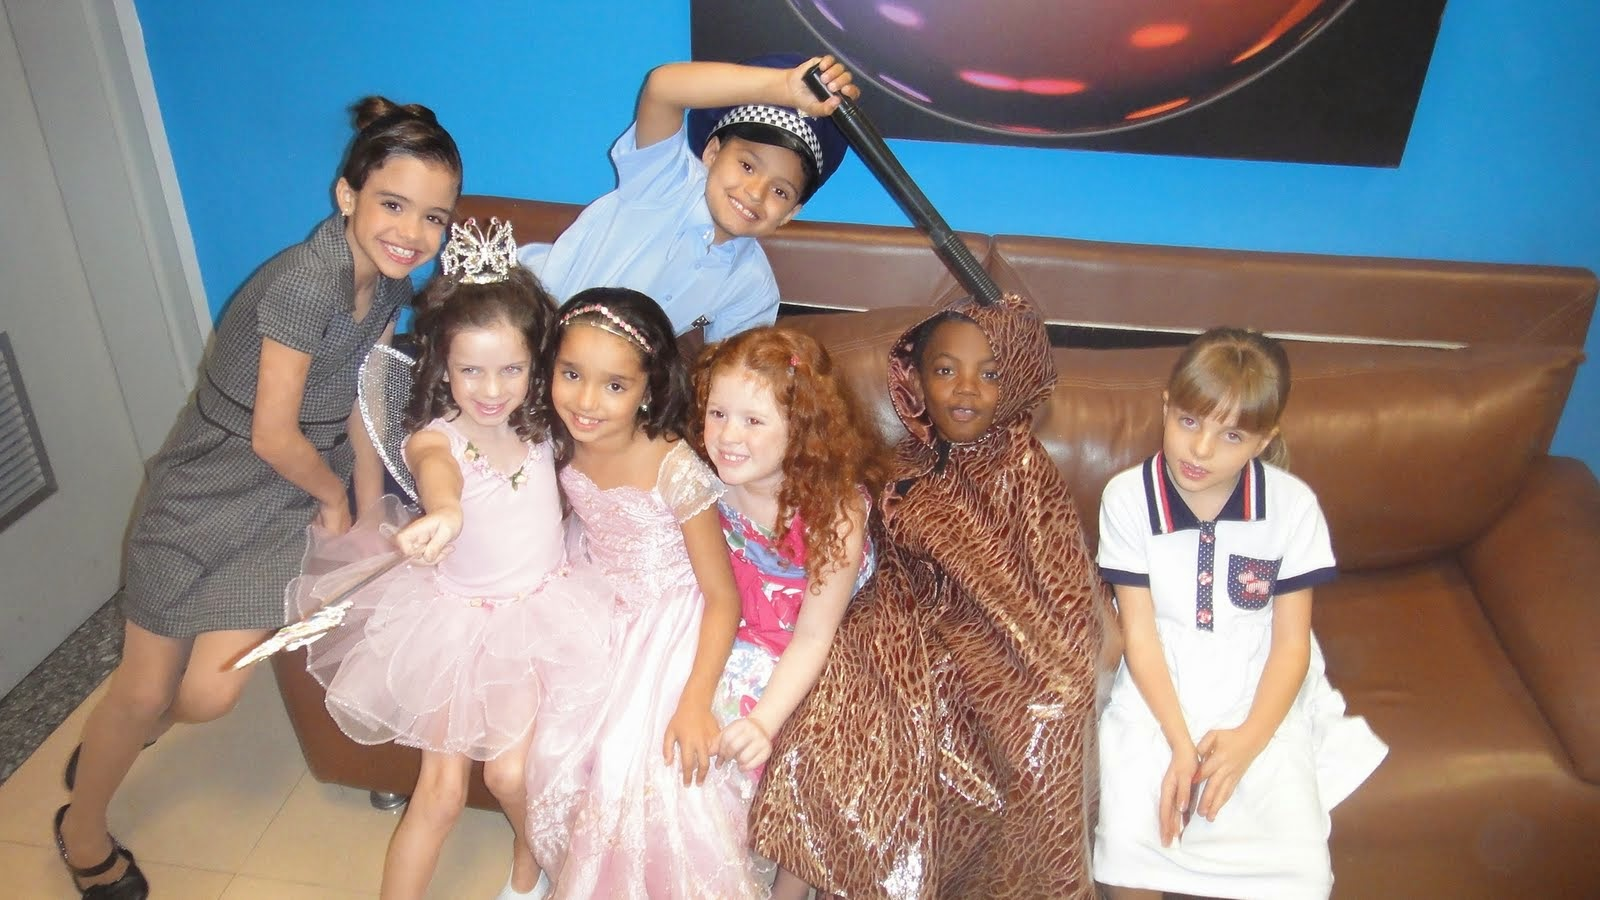 Com o elenco infantil do Sbt